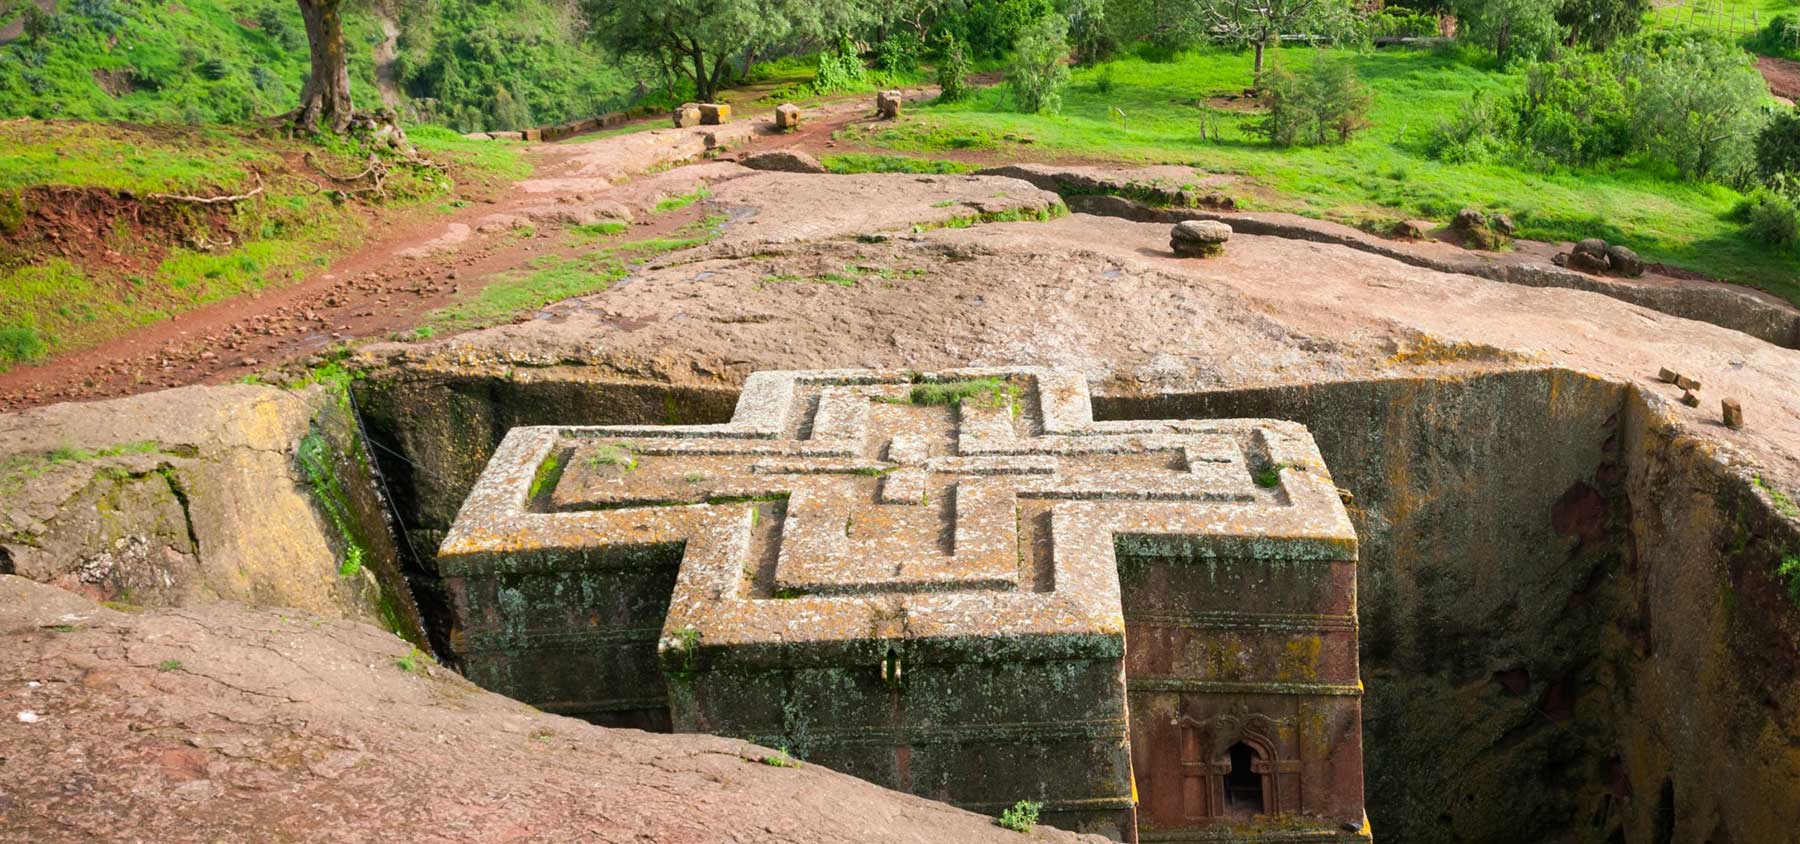 LALIBELA (The Work Of Angels)